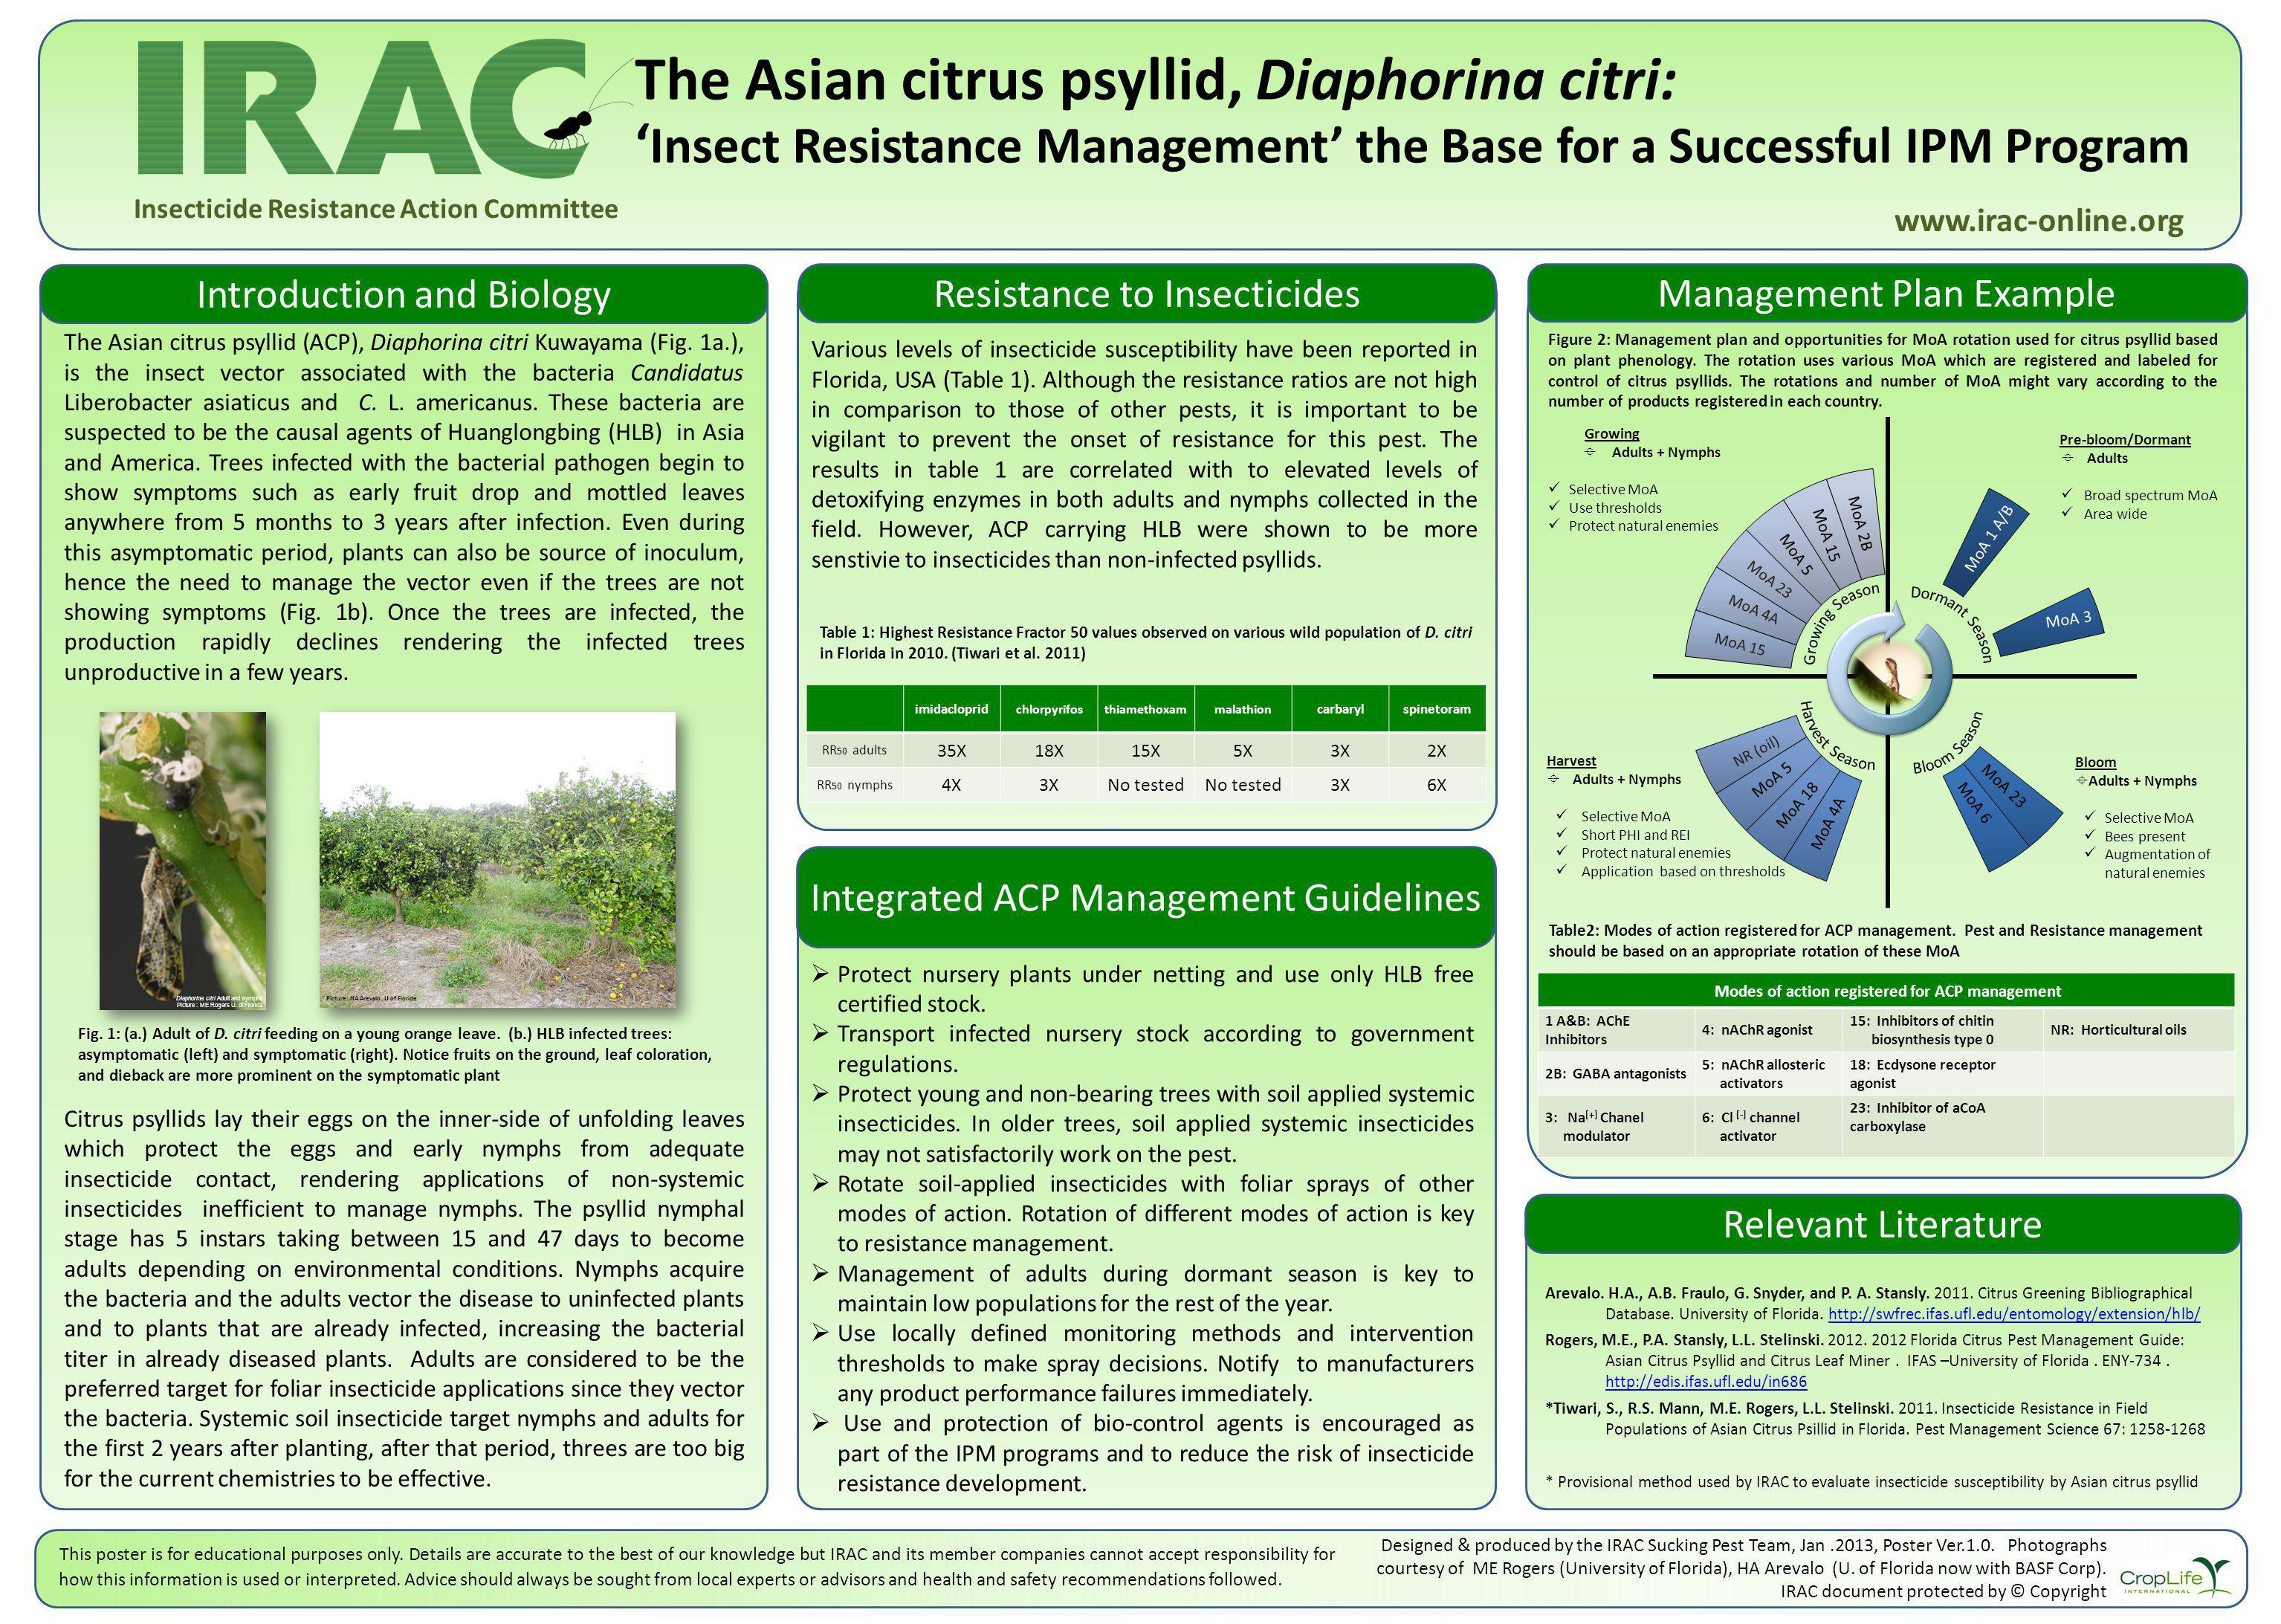 The Asian citrus psyllid, Diaphorina citri: Insect Resistance Management the Base for a Successful IPM Program www.irac-online.org Introduction and Biology The Asian citrus psyllid (ACP), Diaphorina citri Kuwayama (Fig.